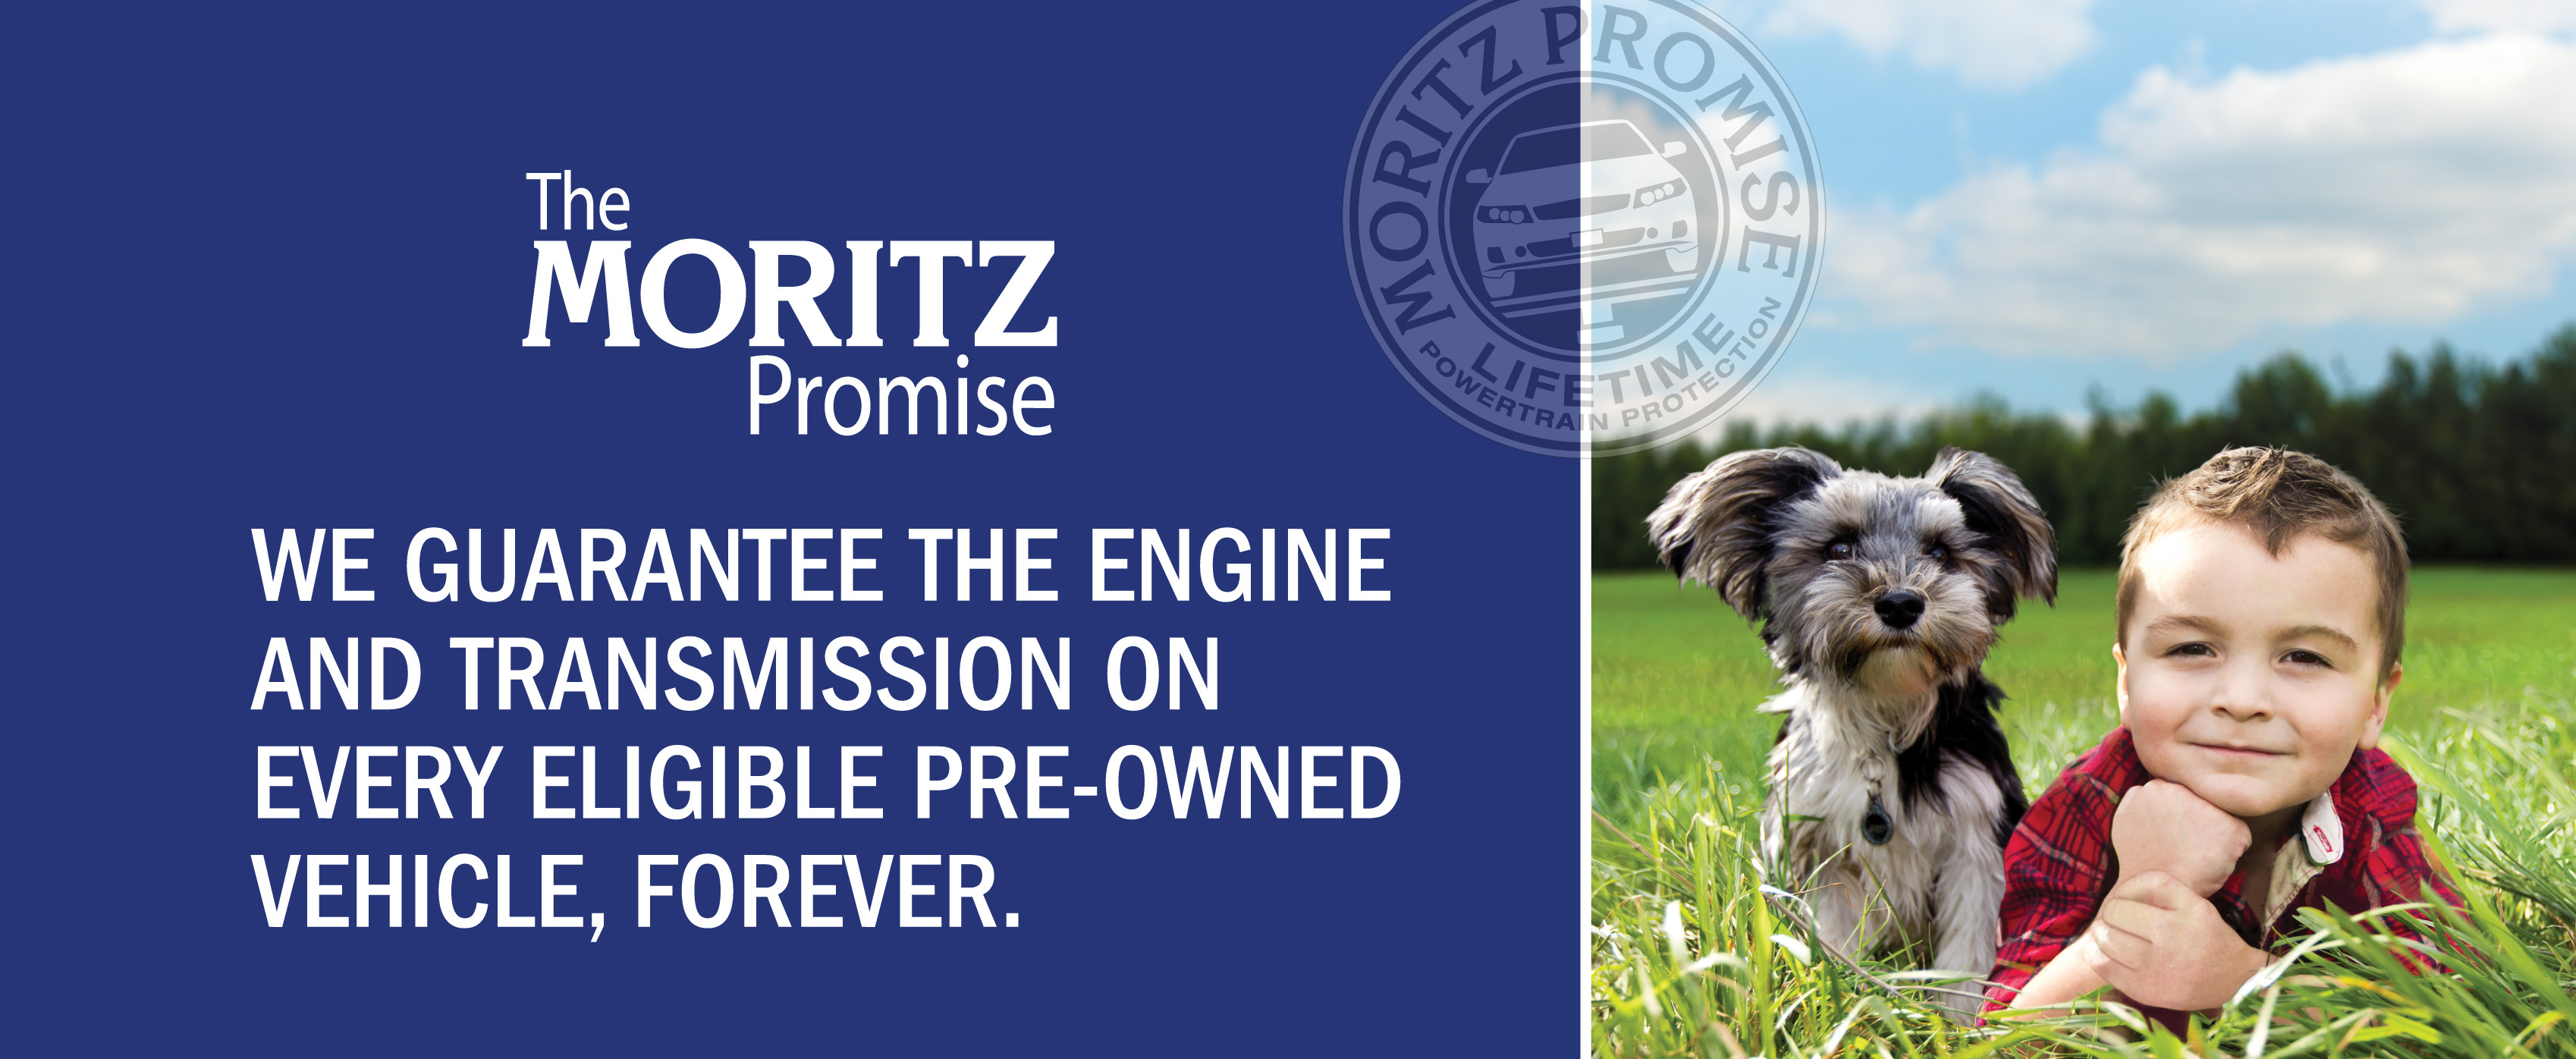 We guarantee the engine and transmission on every eligible pre-owned vehicle, forever.